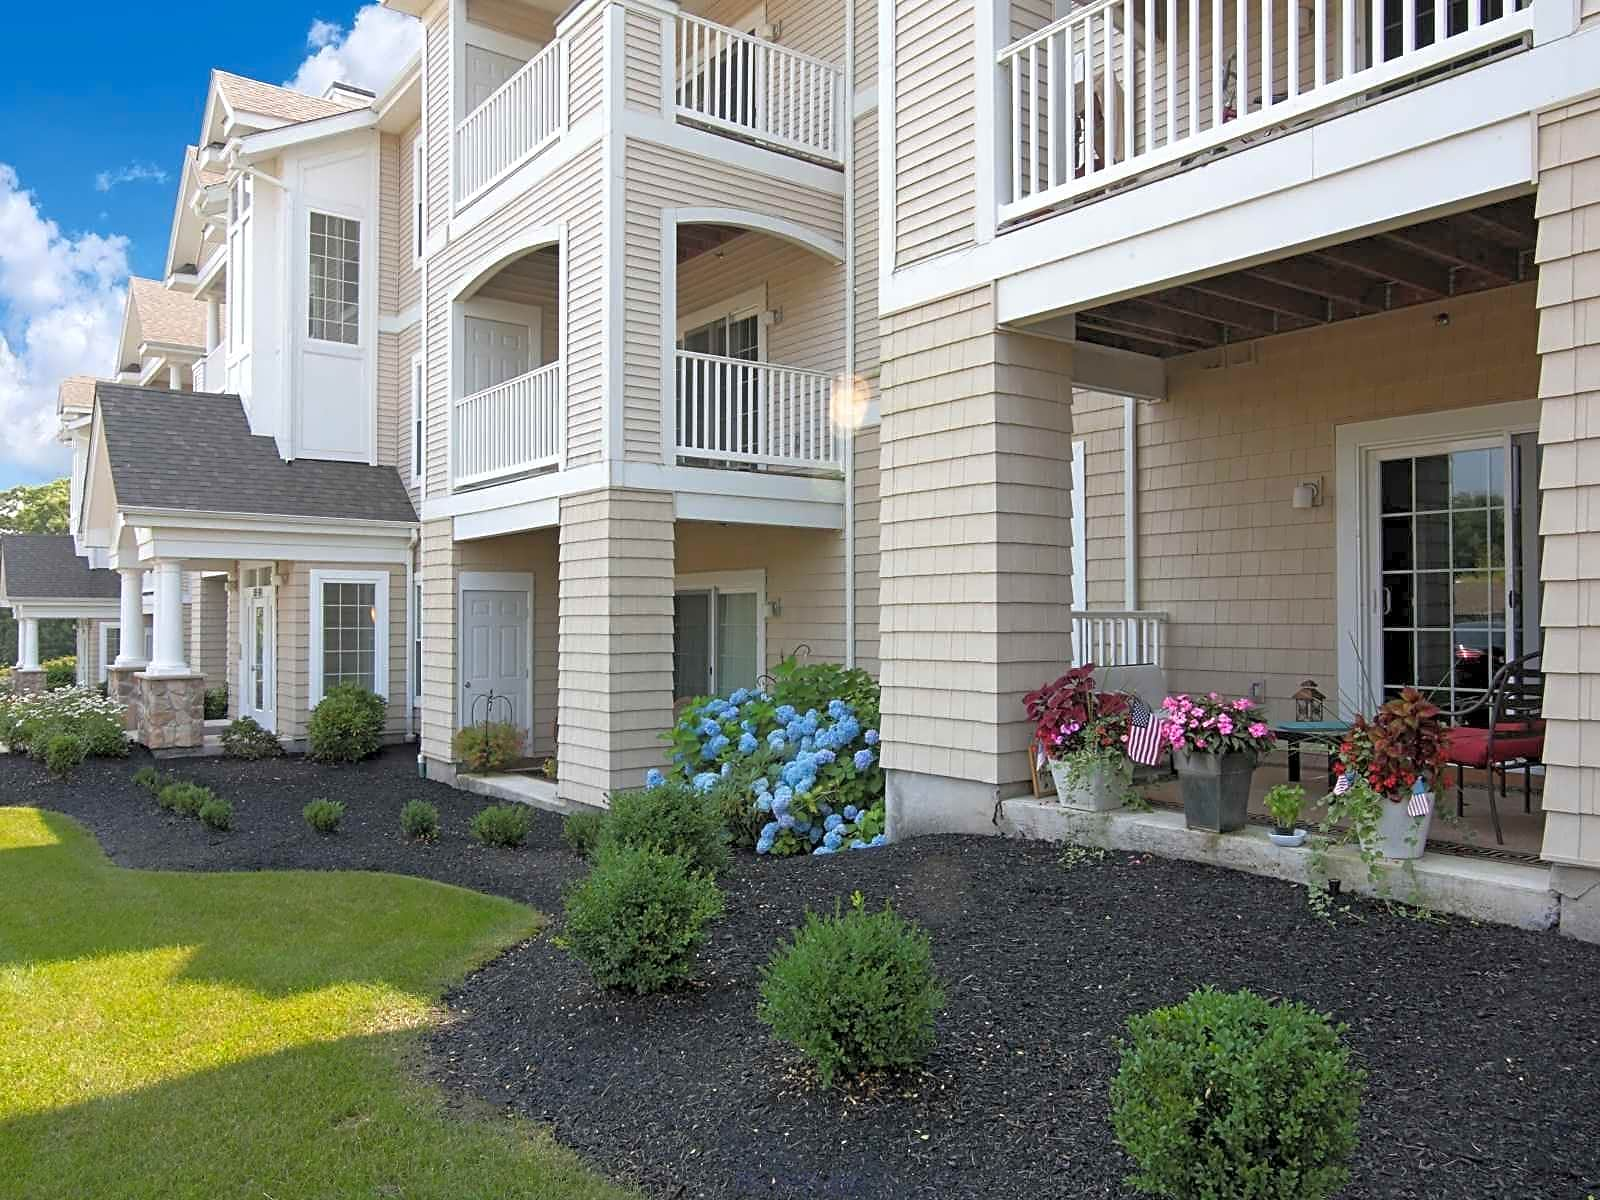 Pet Friendly Apartments in Middletown, CT  Pet Friendly Houses for Rent